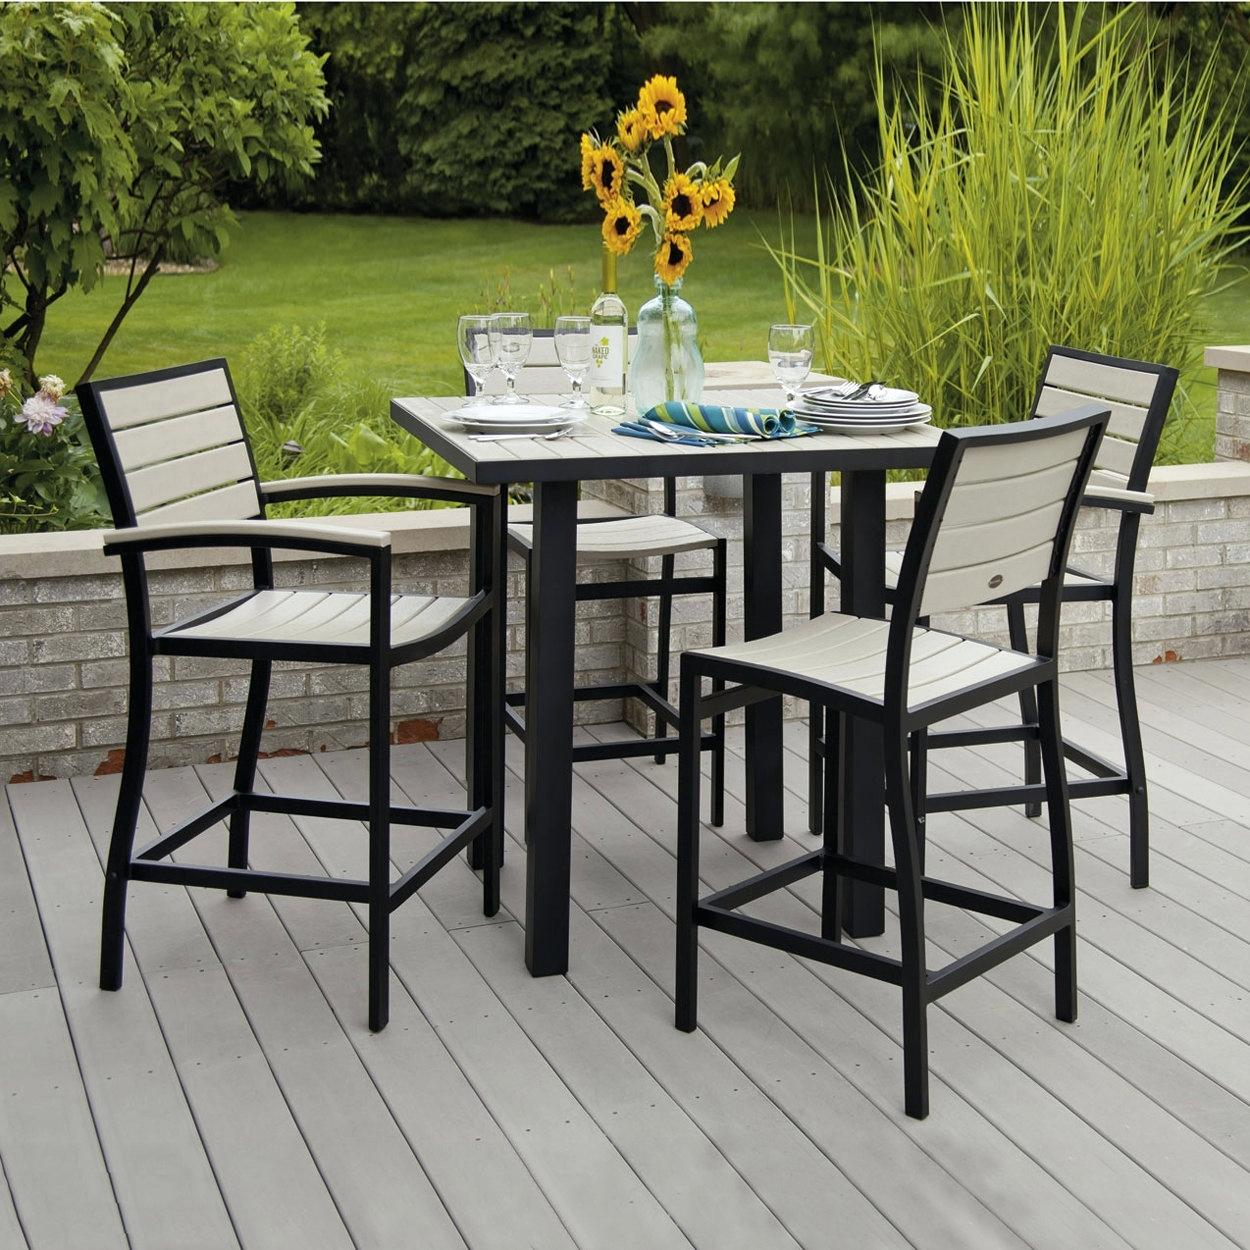 counter height outdoor table and chairs counter height outdoor dining set euro 5 piece counter height VDGMUSY